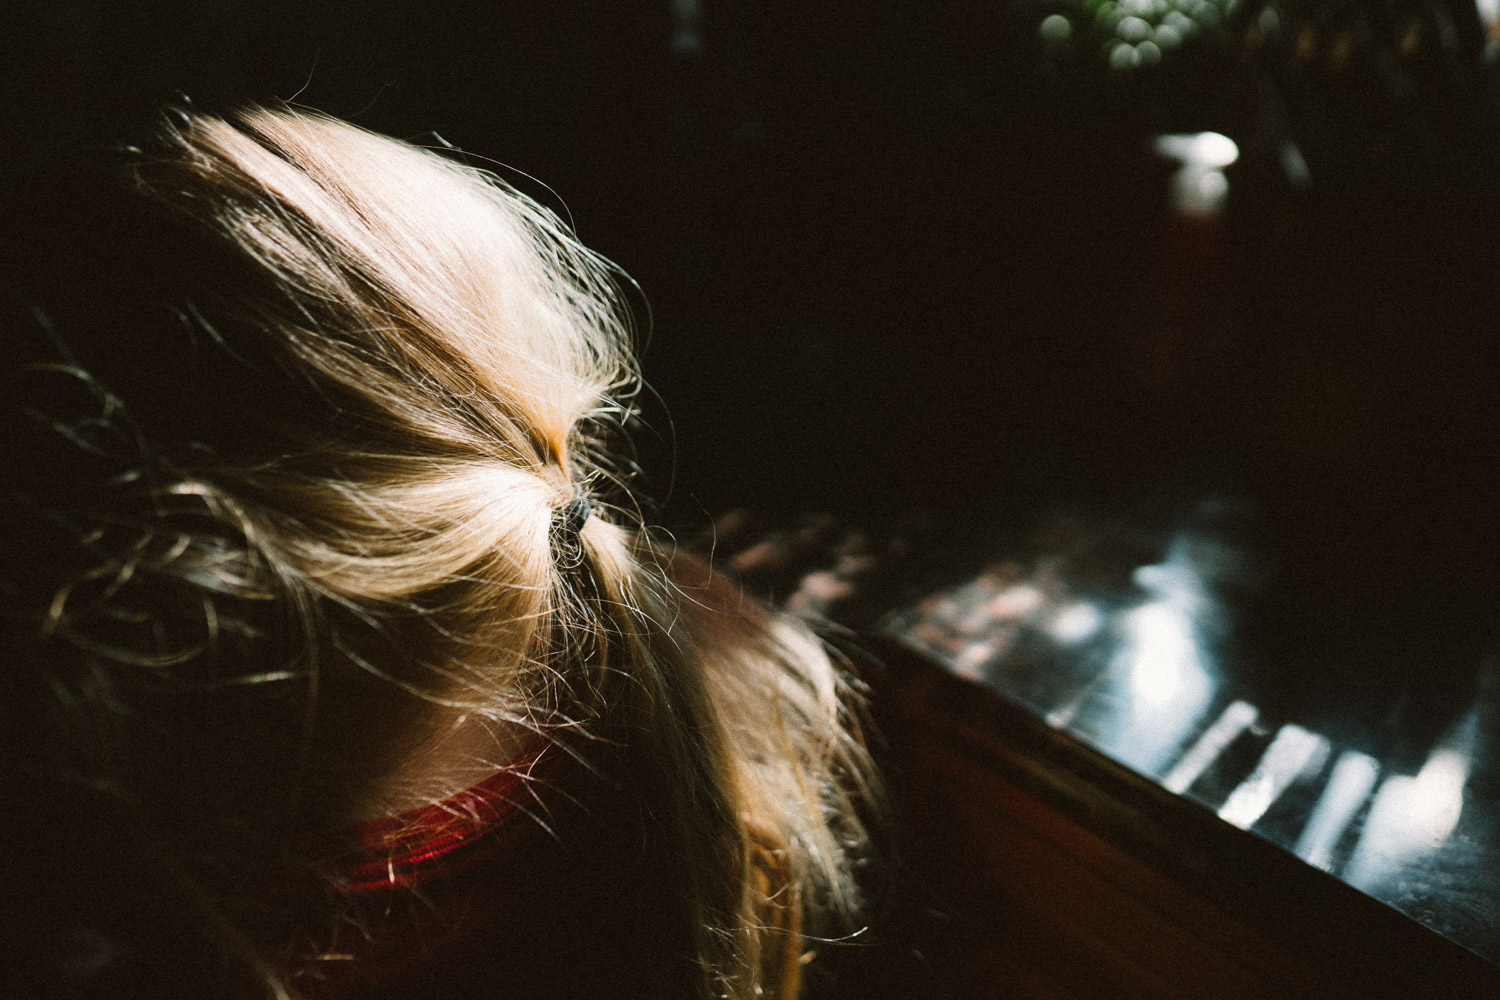 Sunlight on a blonde ponytail.